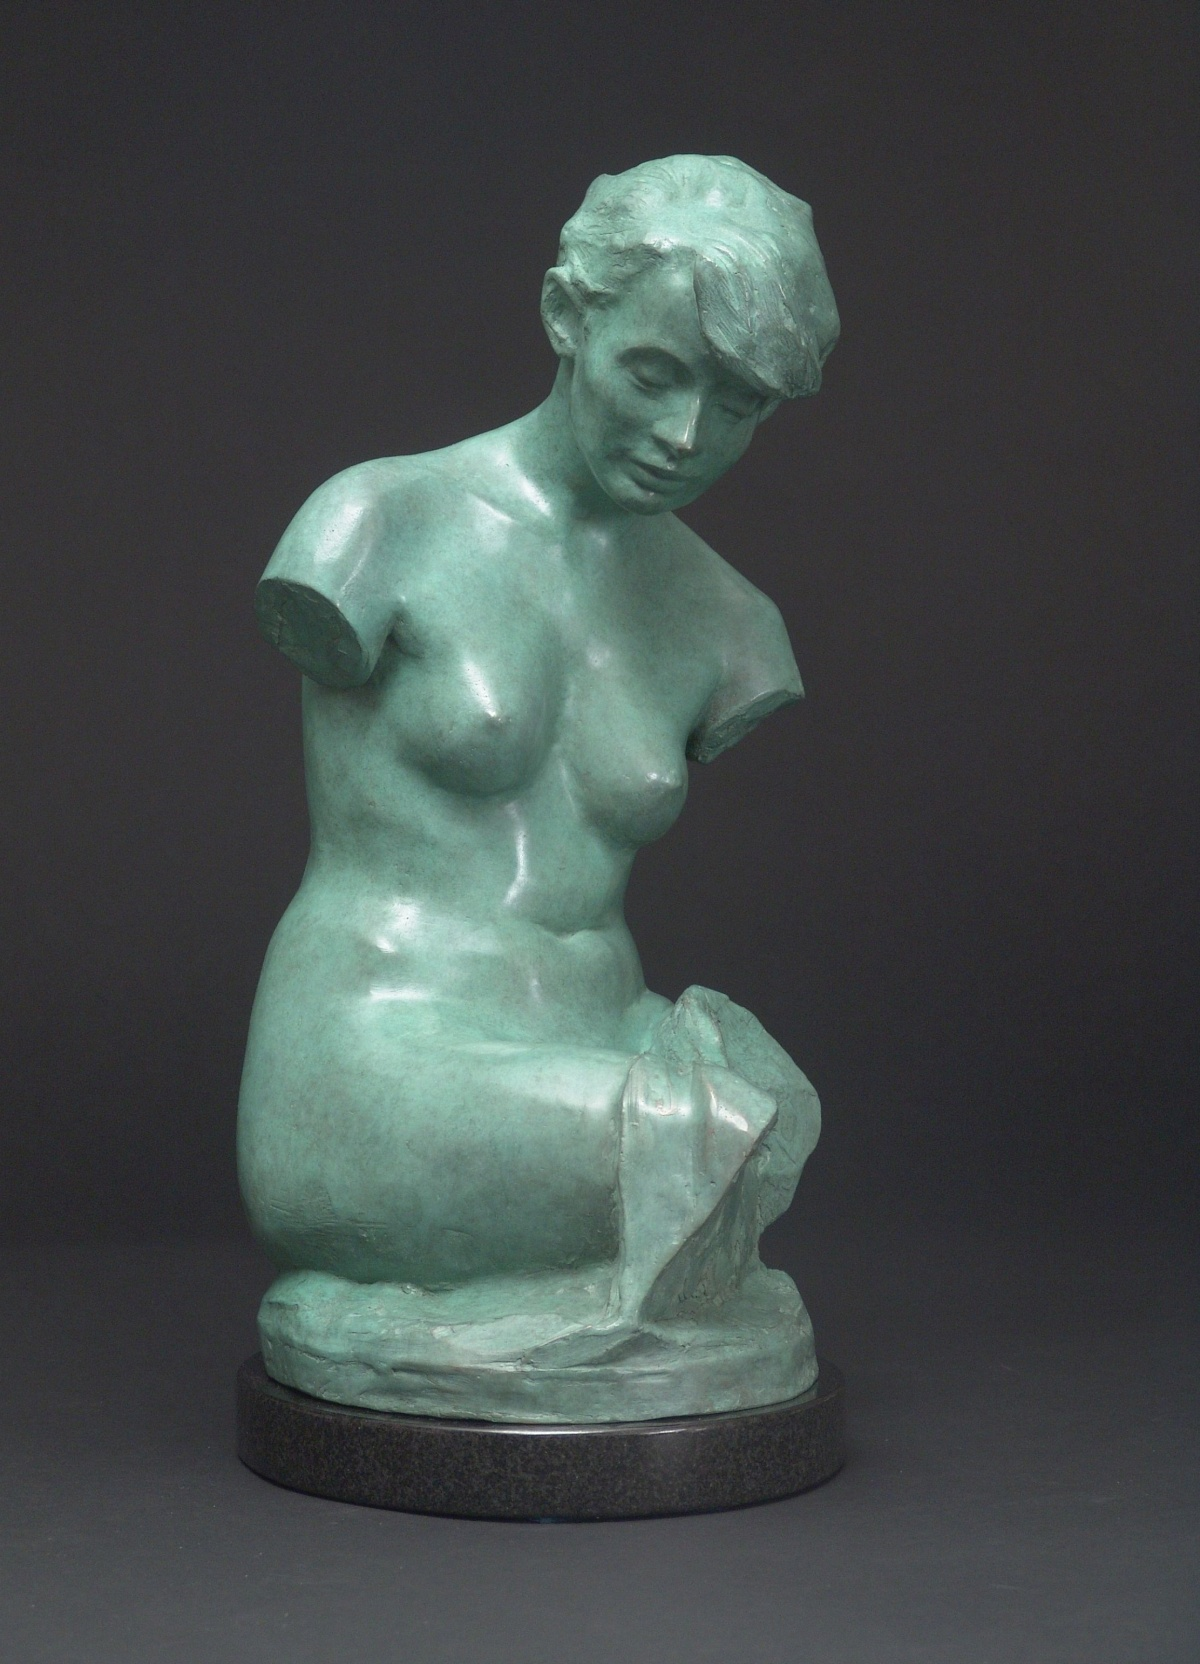 Torso, bronze, 20 inches high